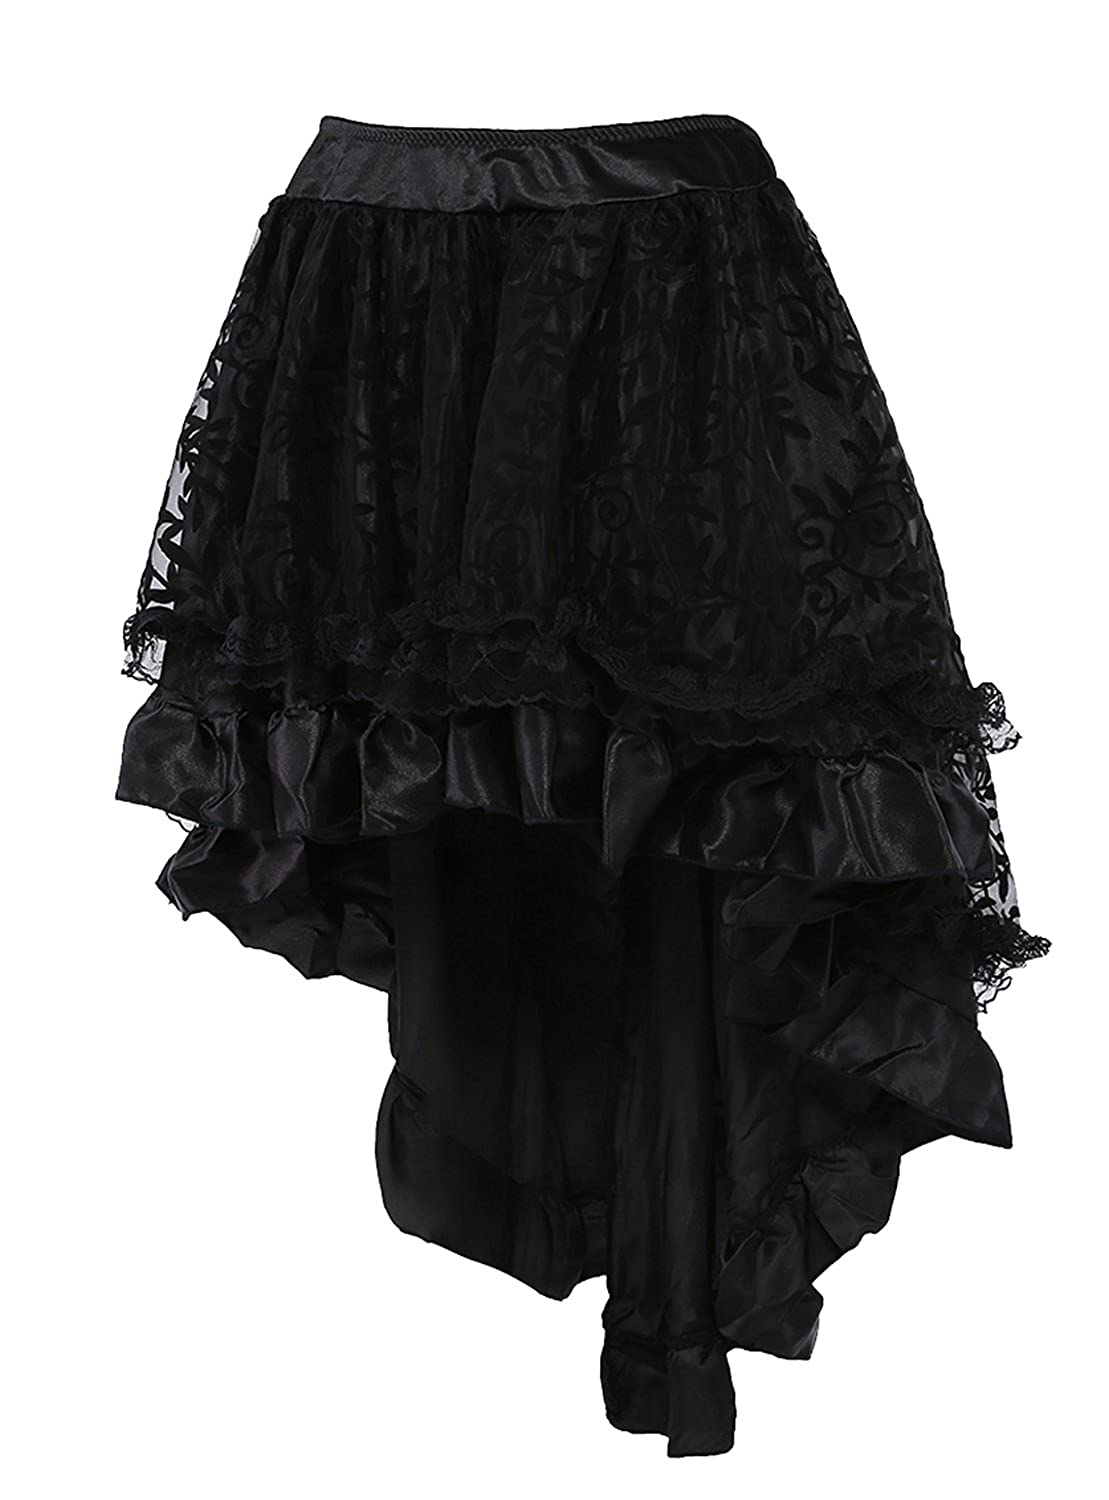 Steampunk Skirts Bustle Skirts Lace Skirts Ruffle Skirts